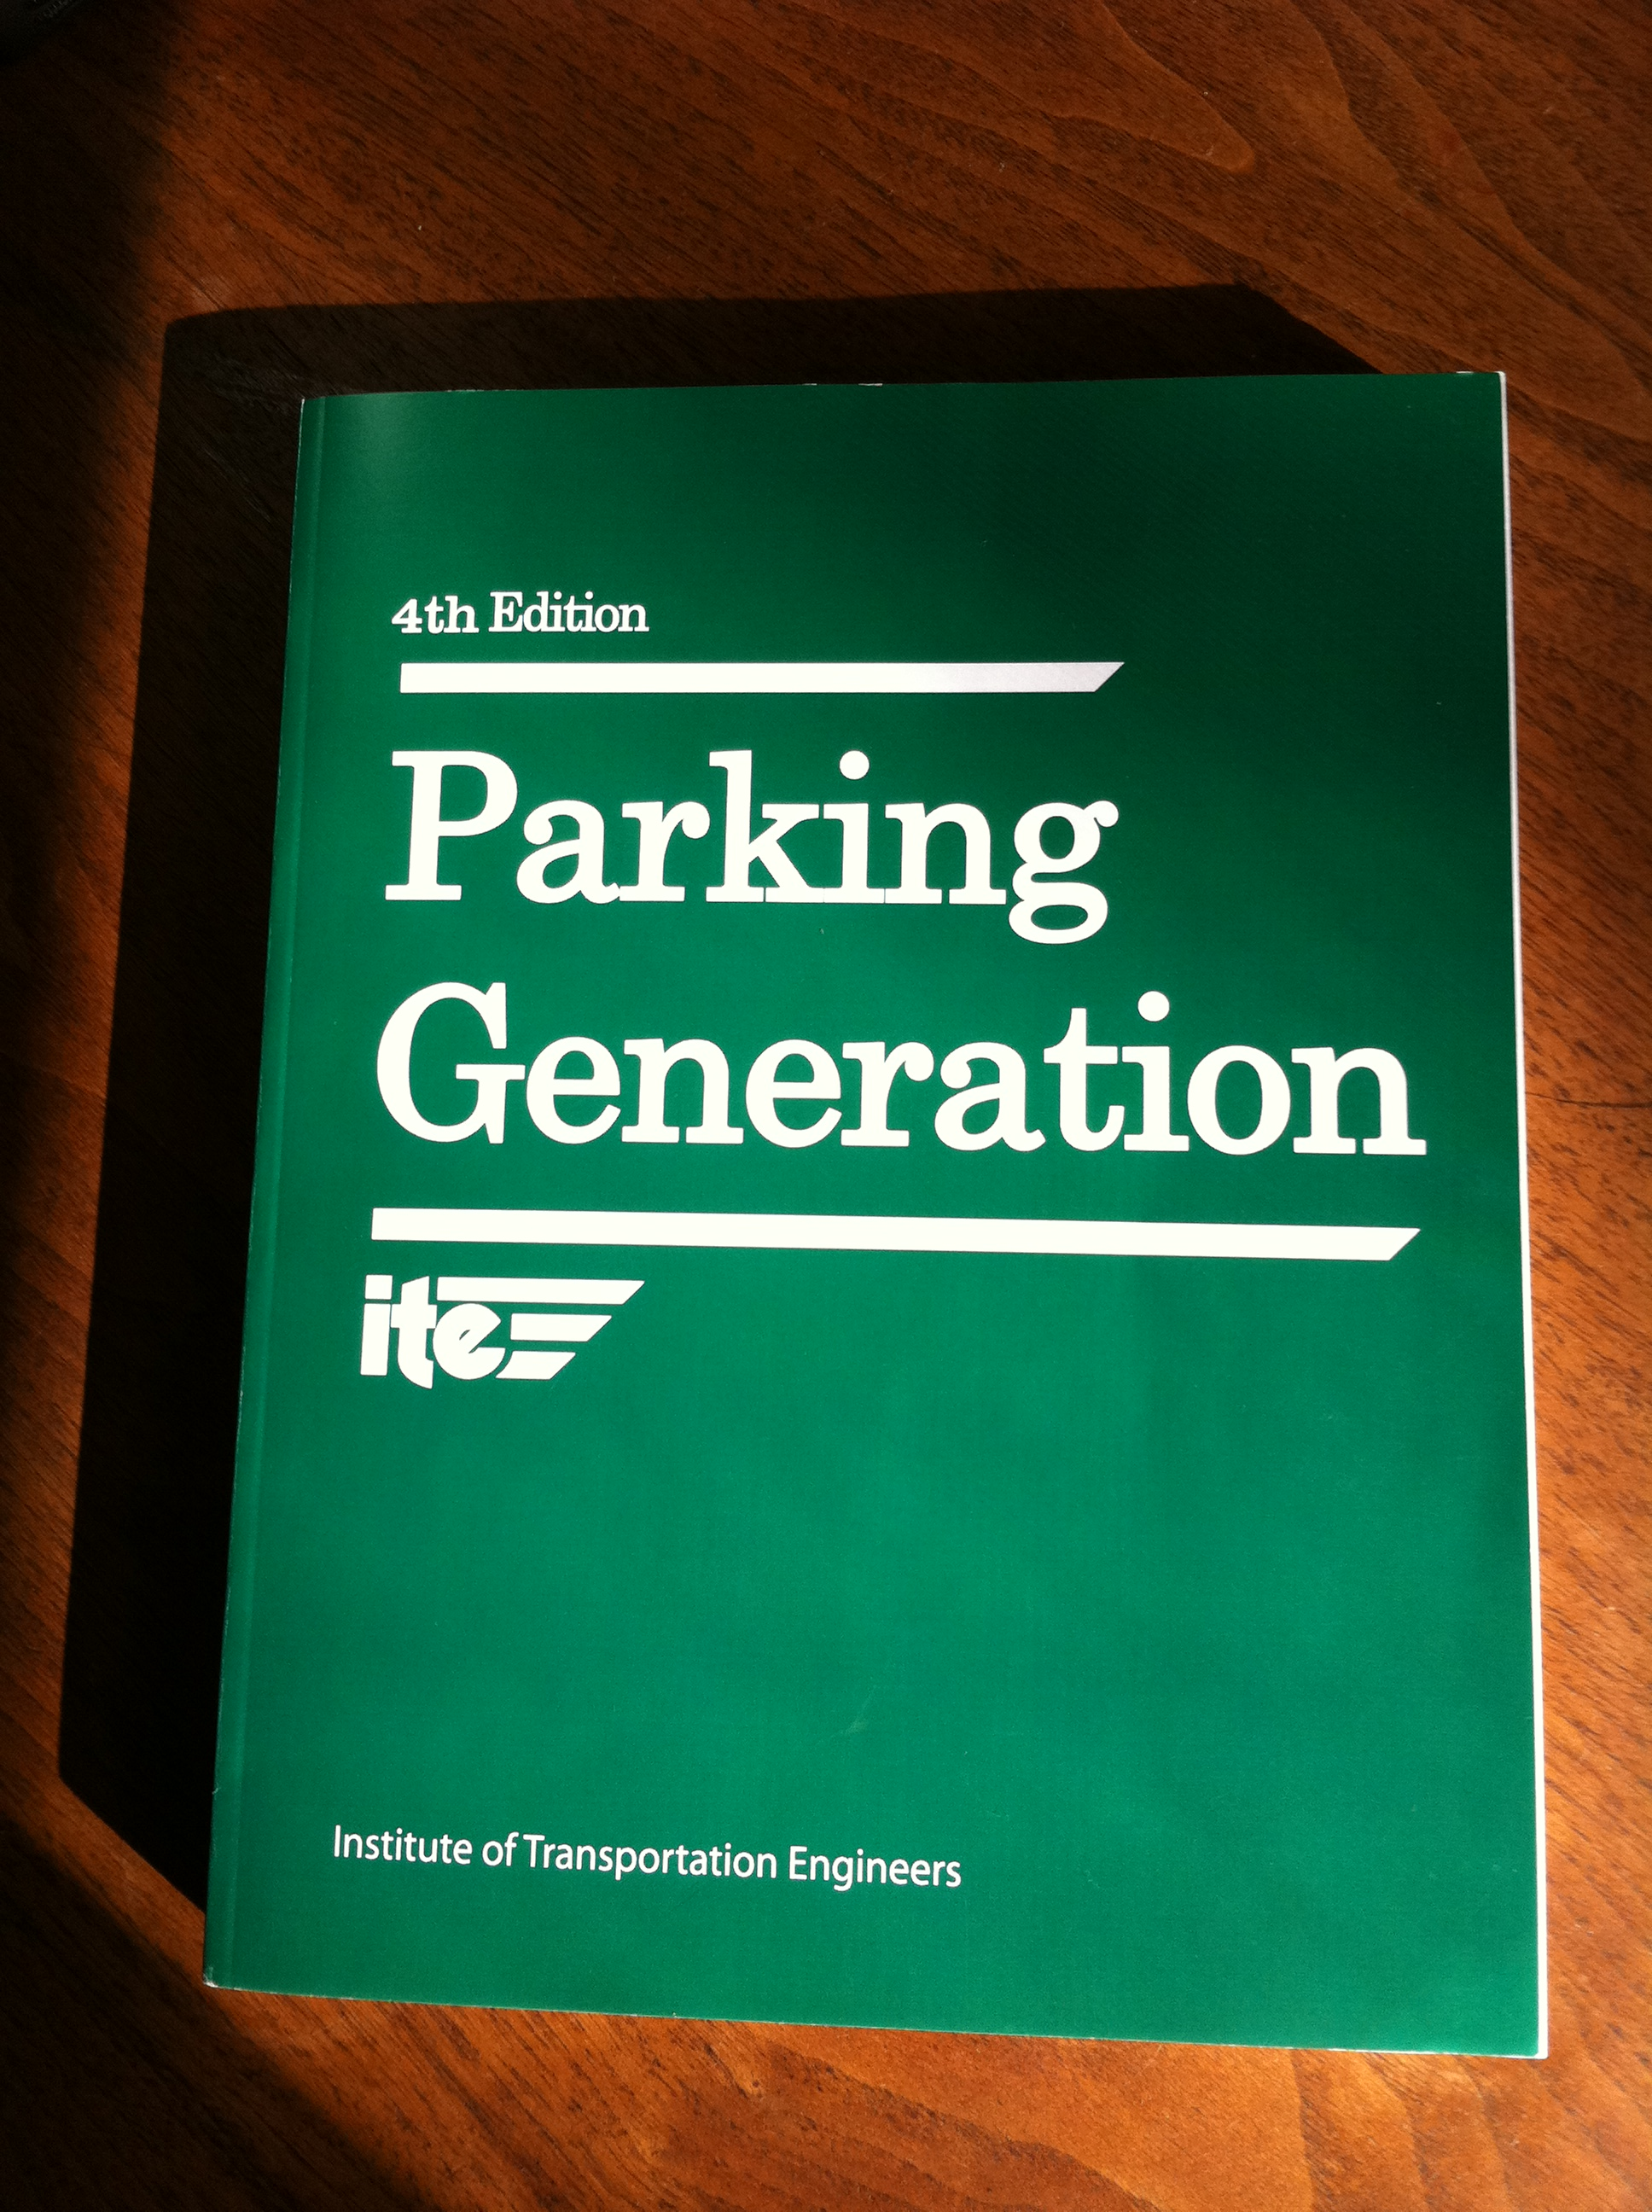 ITE's Parking Generation Report, 4th Edition